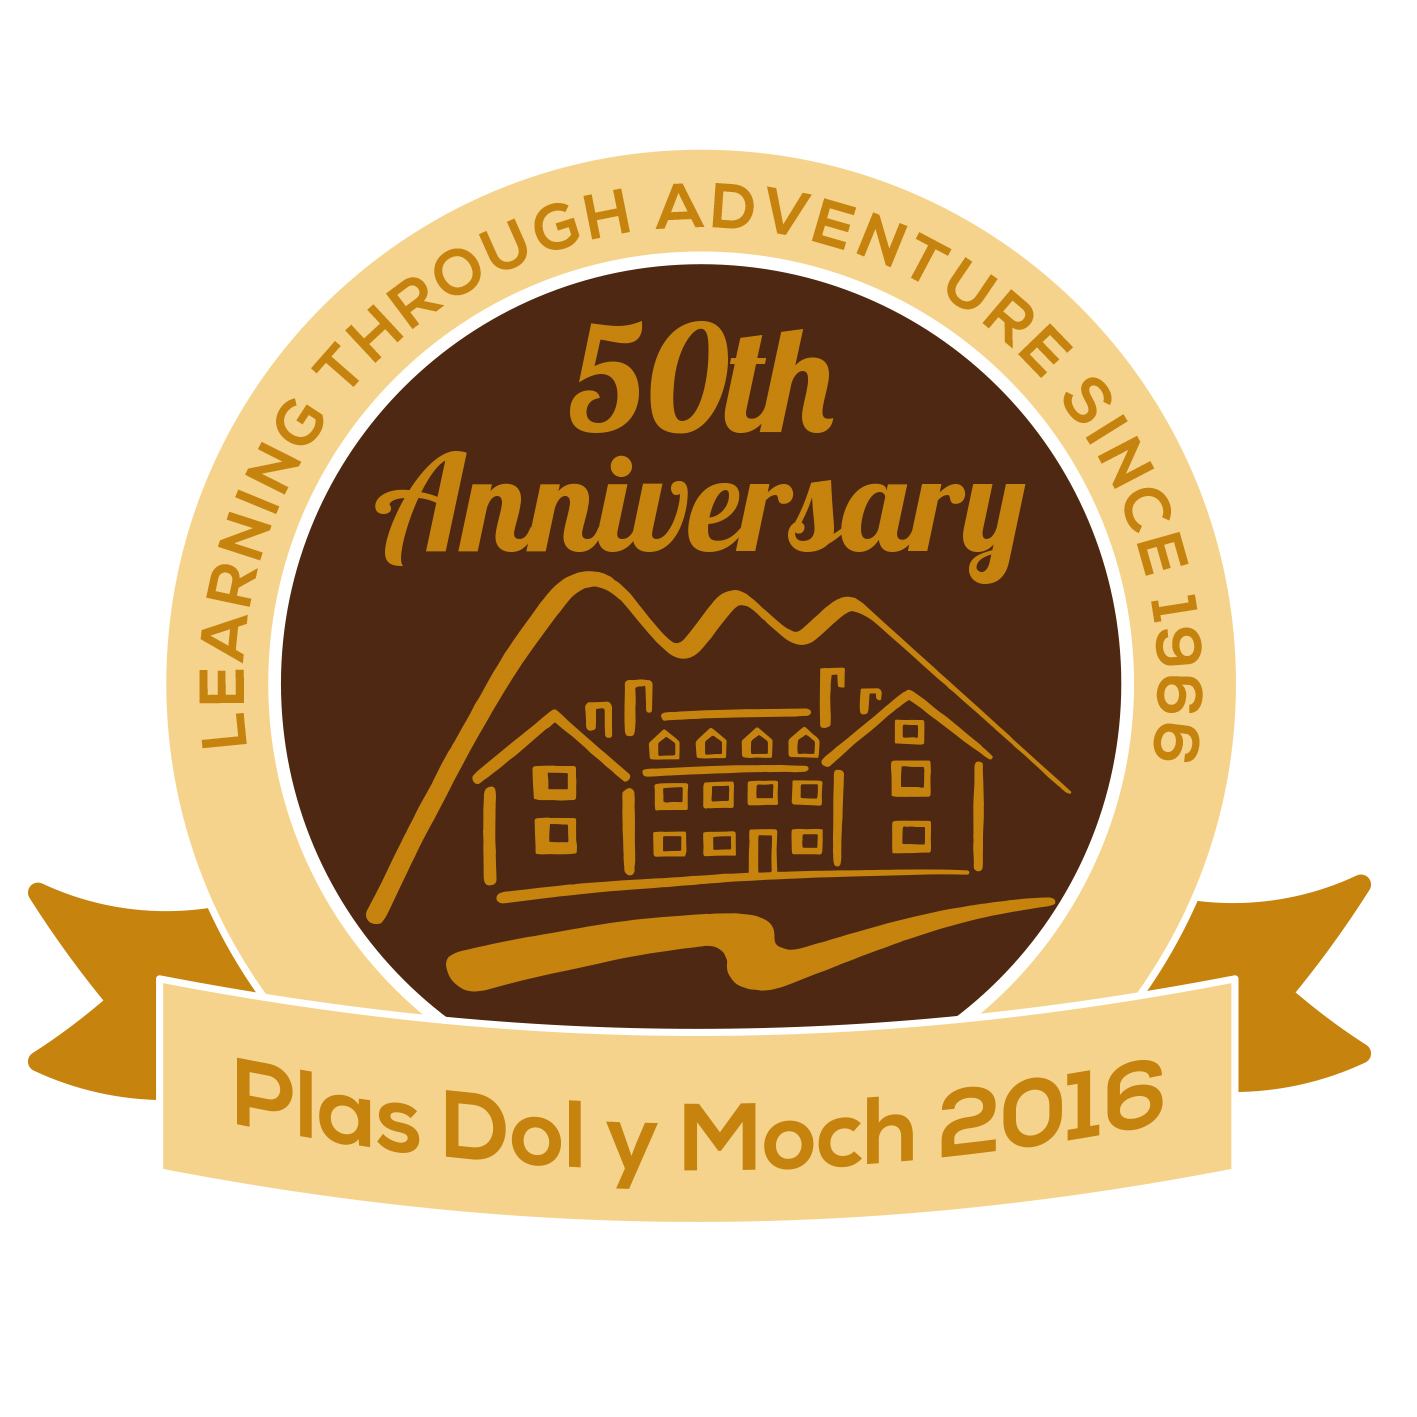 Plas DolyMoch 50th Anniversary design